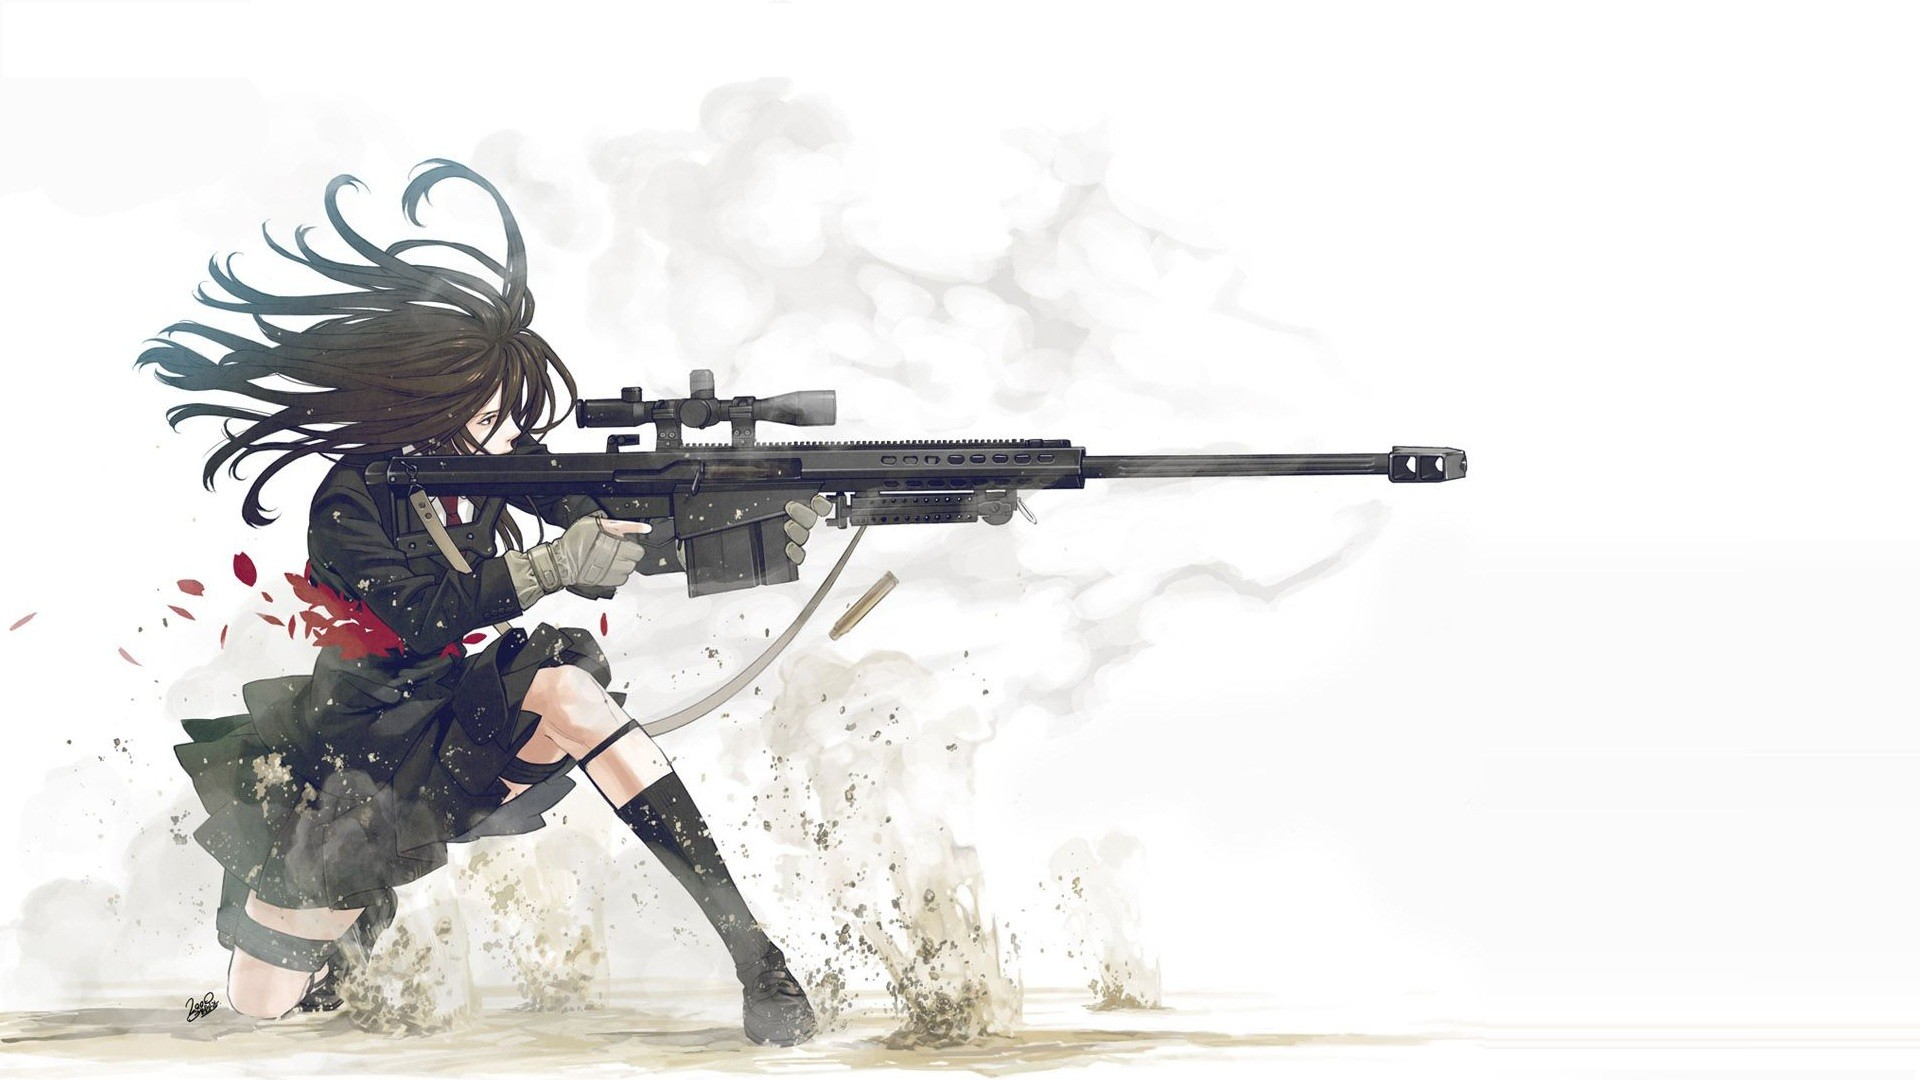 Anime Guns Weapons Manga Anime Girls White Background Sniper Rifles free  iPhone or Android Full HD wallpaper.